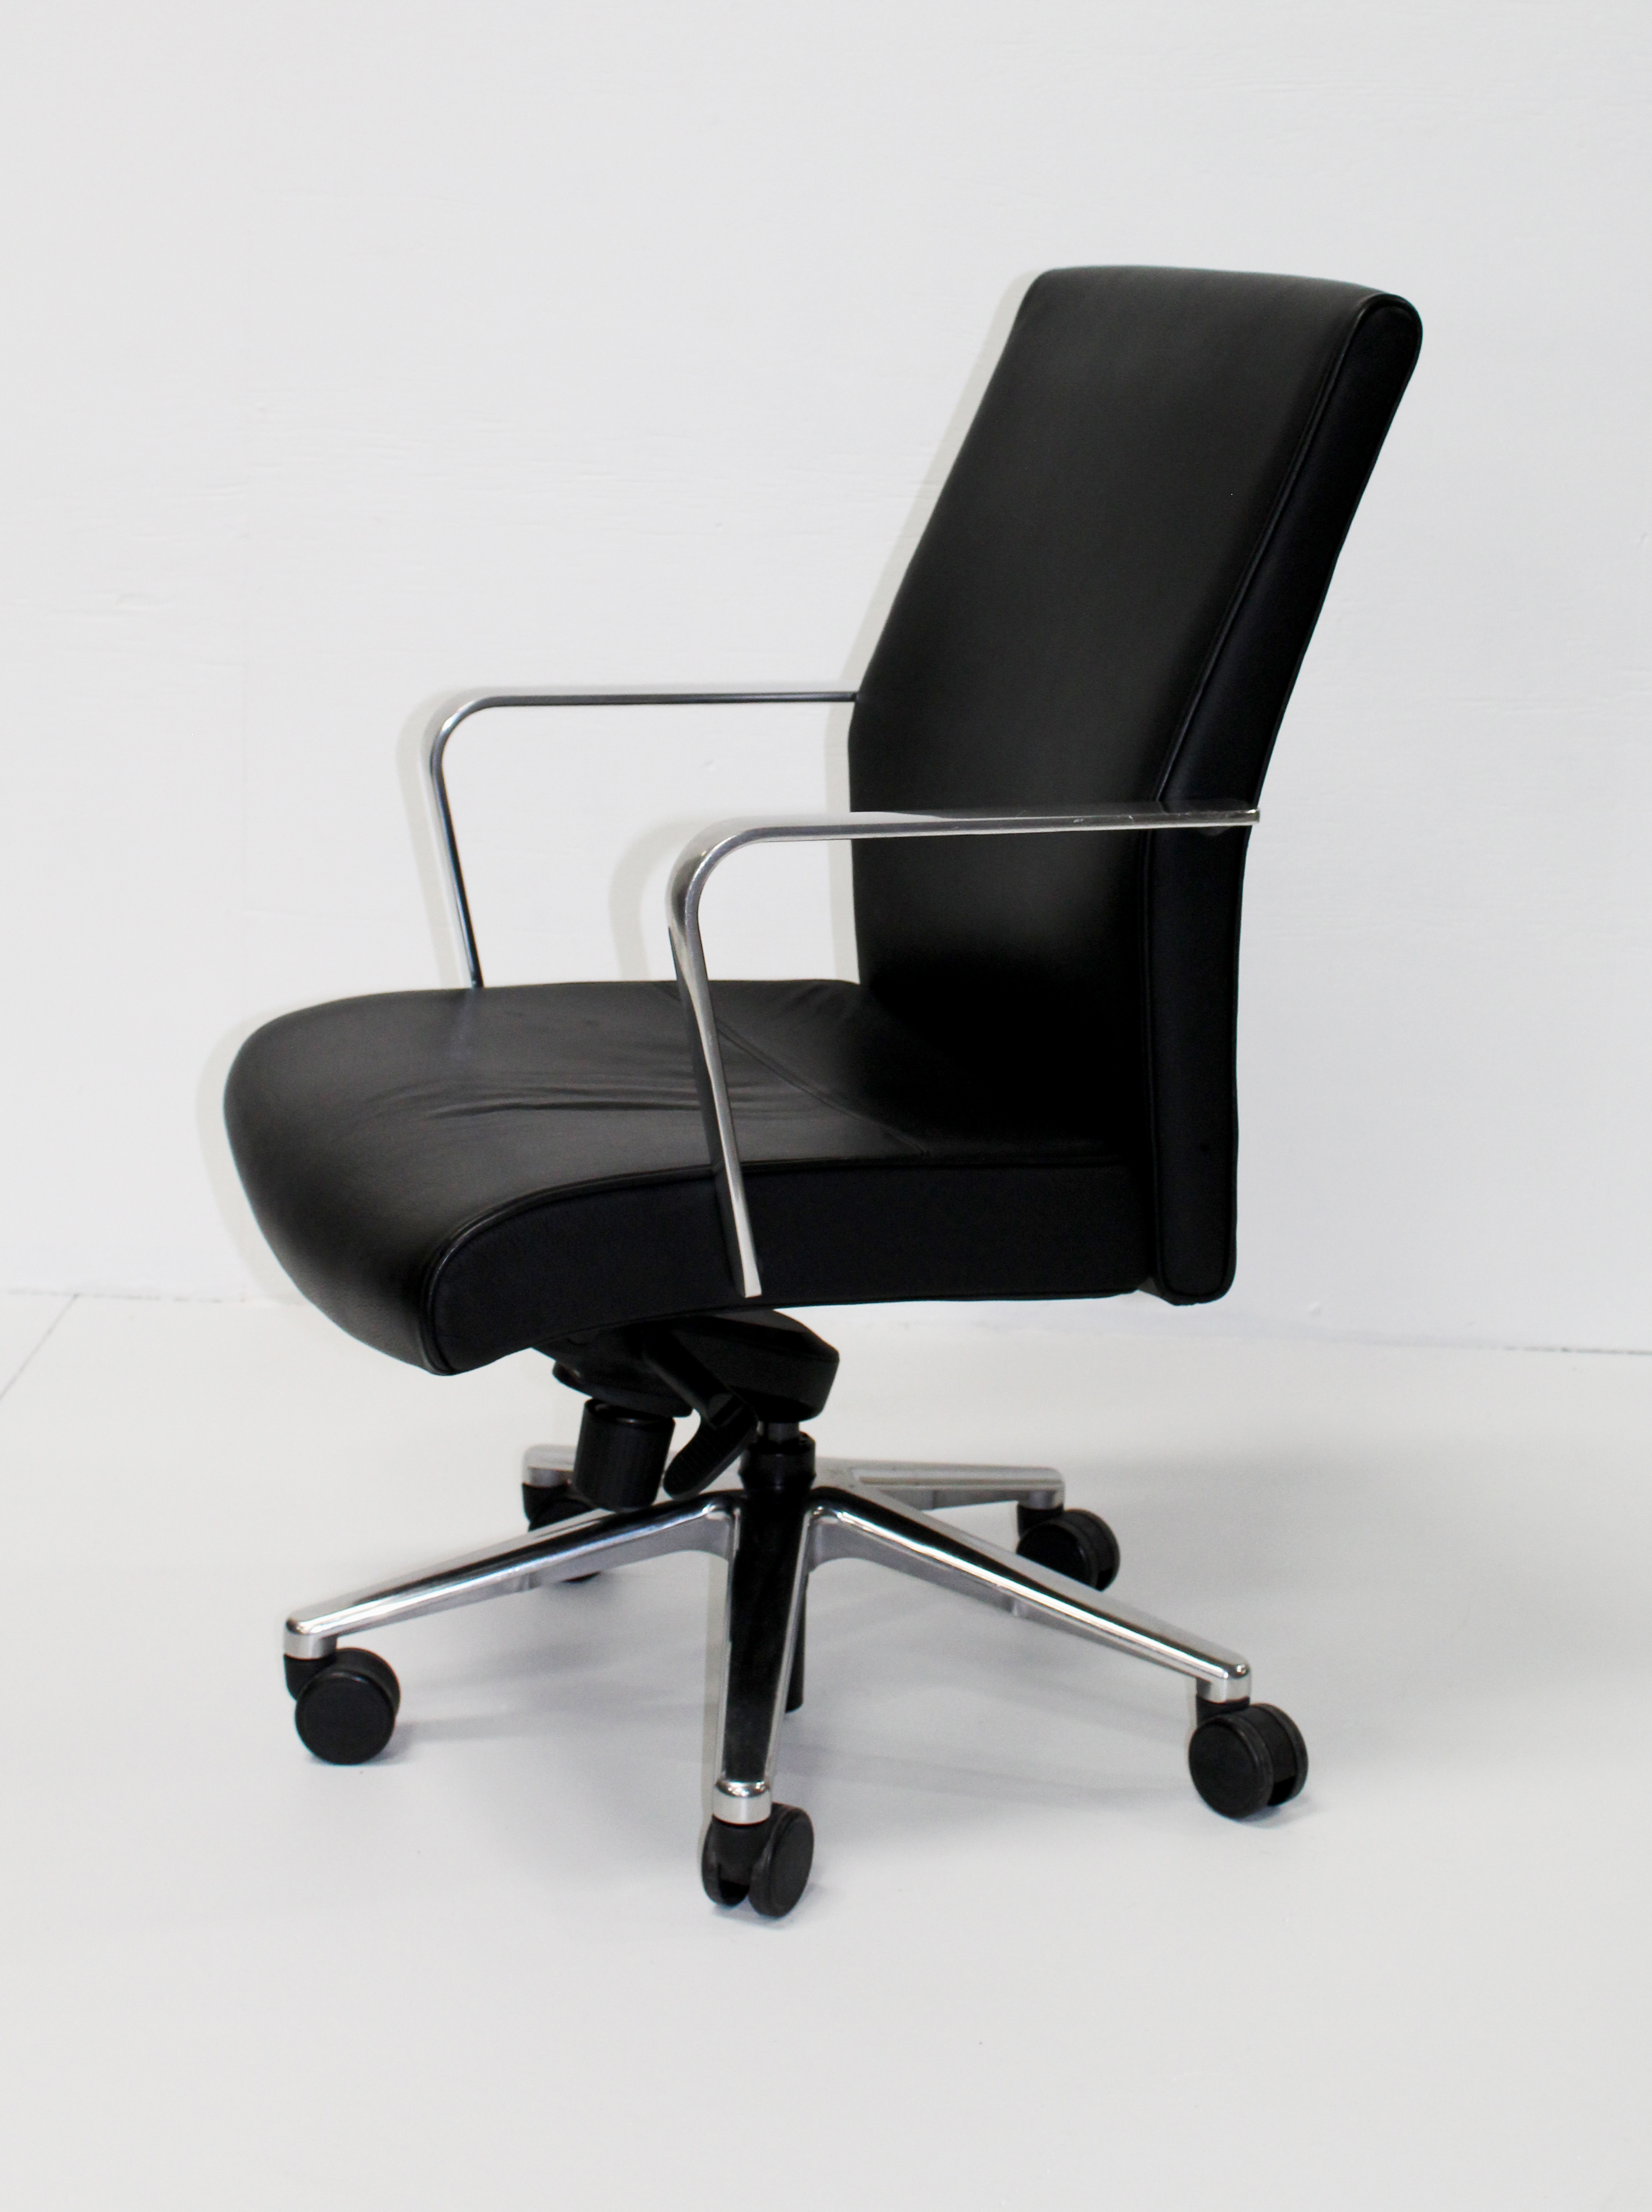 Swell Black Leather High Back Conference Chair By Keilhauer Caraccident5 Cool Chair Designs And Ideas Caraccident5Info